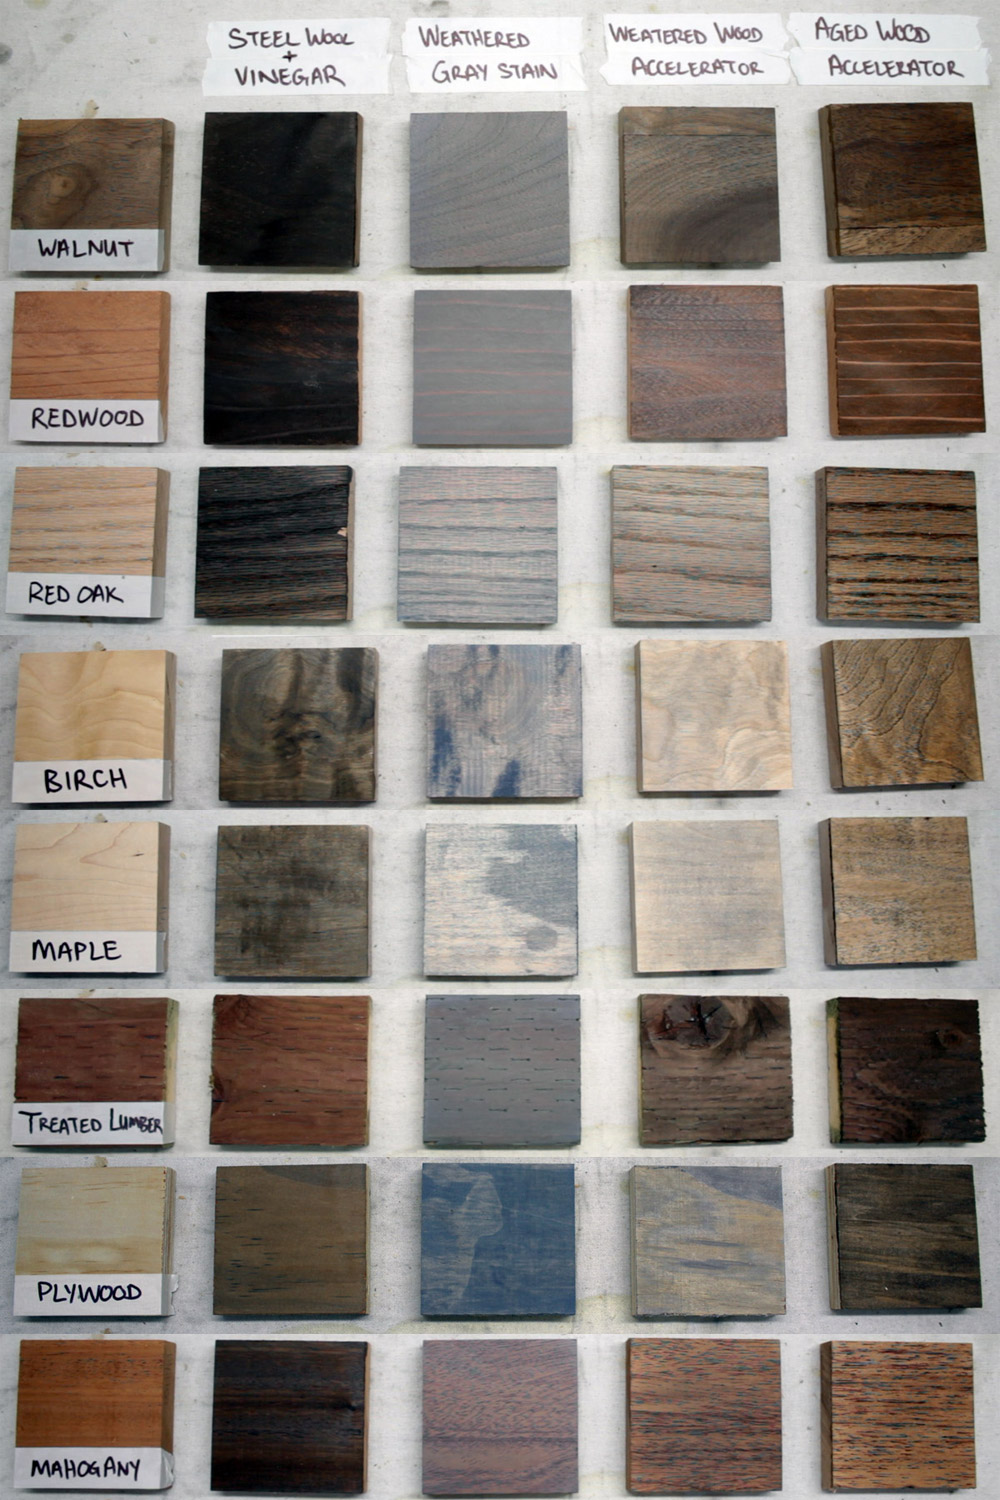 How to age different woods types such as walnut, redwood, red oak, birch, maple, treated lumber, plywood, and mahogany